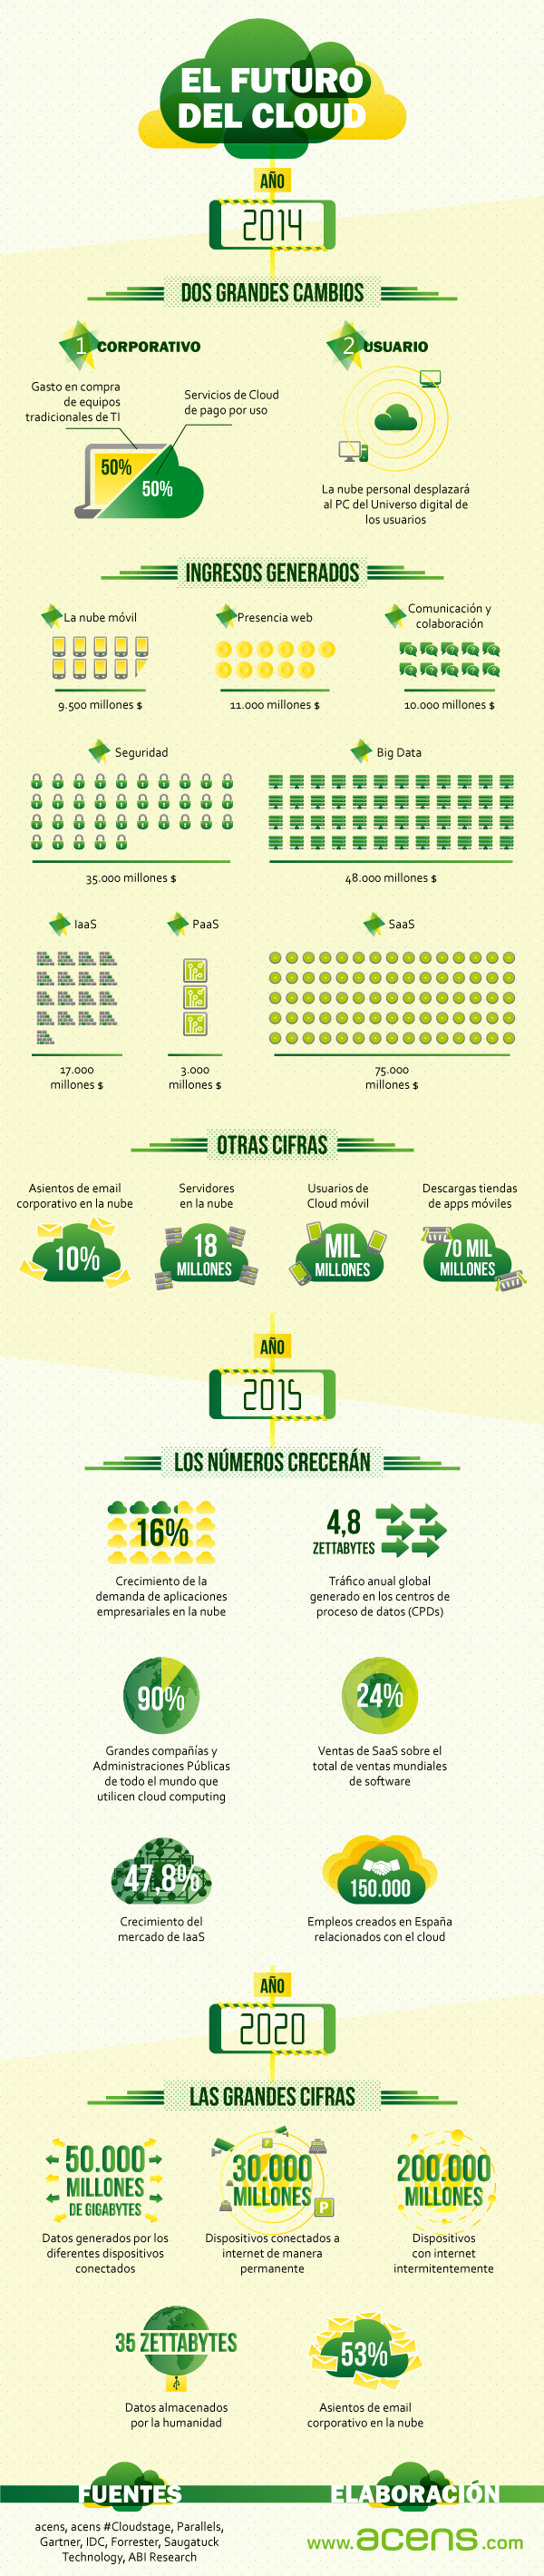 infografia-futuro-del-cloud-blog-acens-cloud-hosting